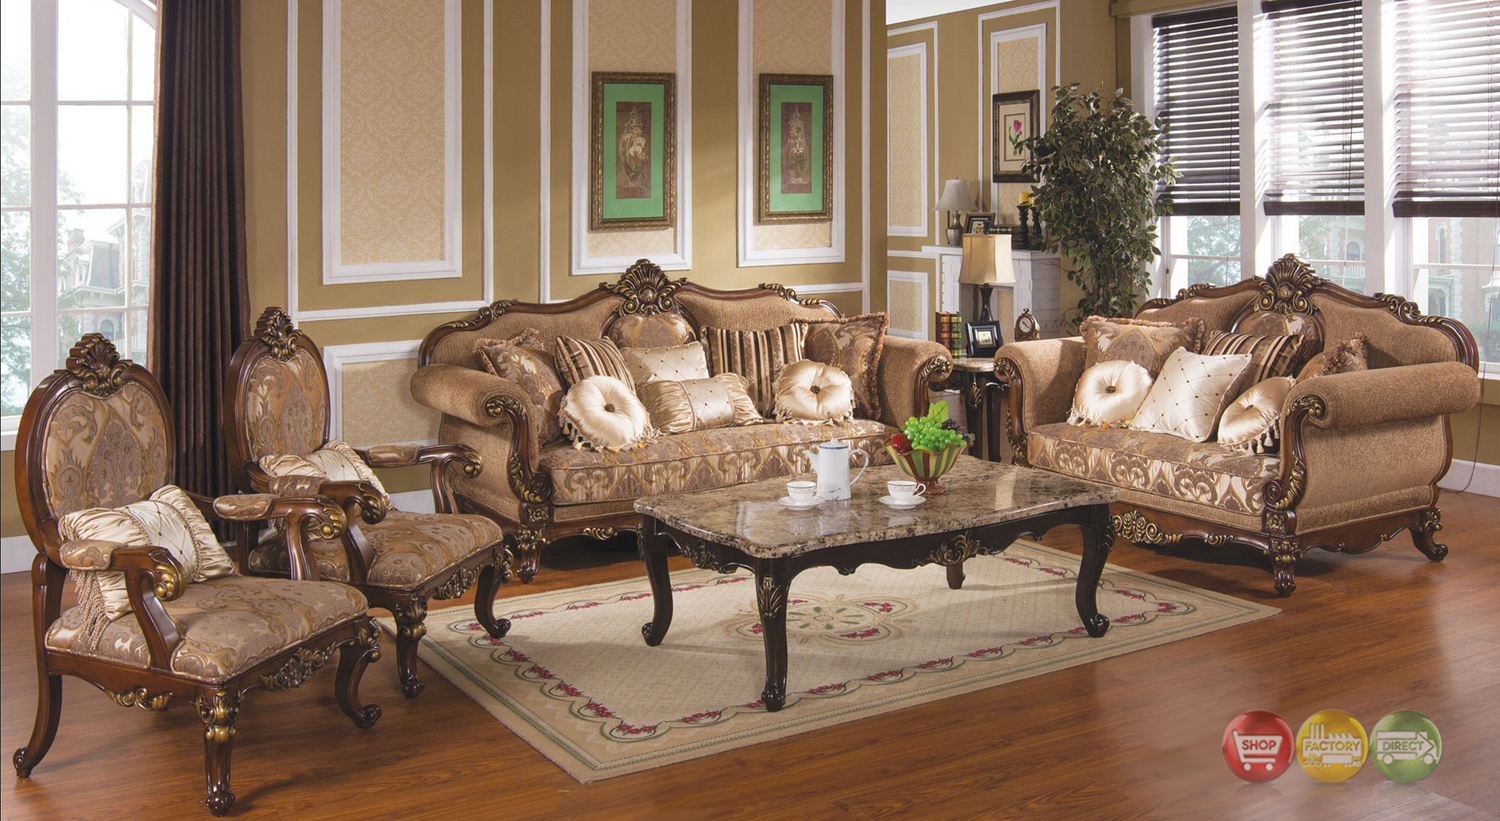 Michael Amini Cortina Luxury Bedroom Furniture Set Honey Walnut Finish By AIC